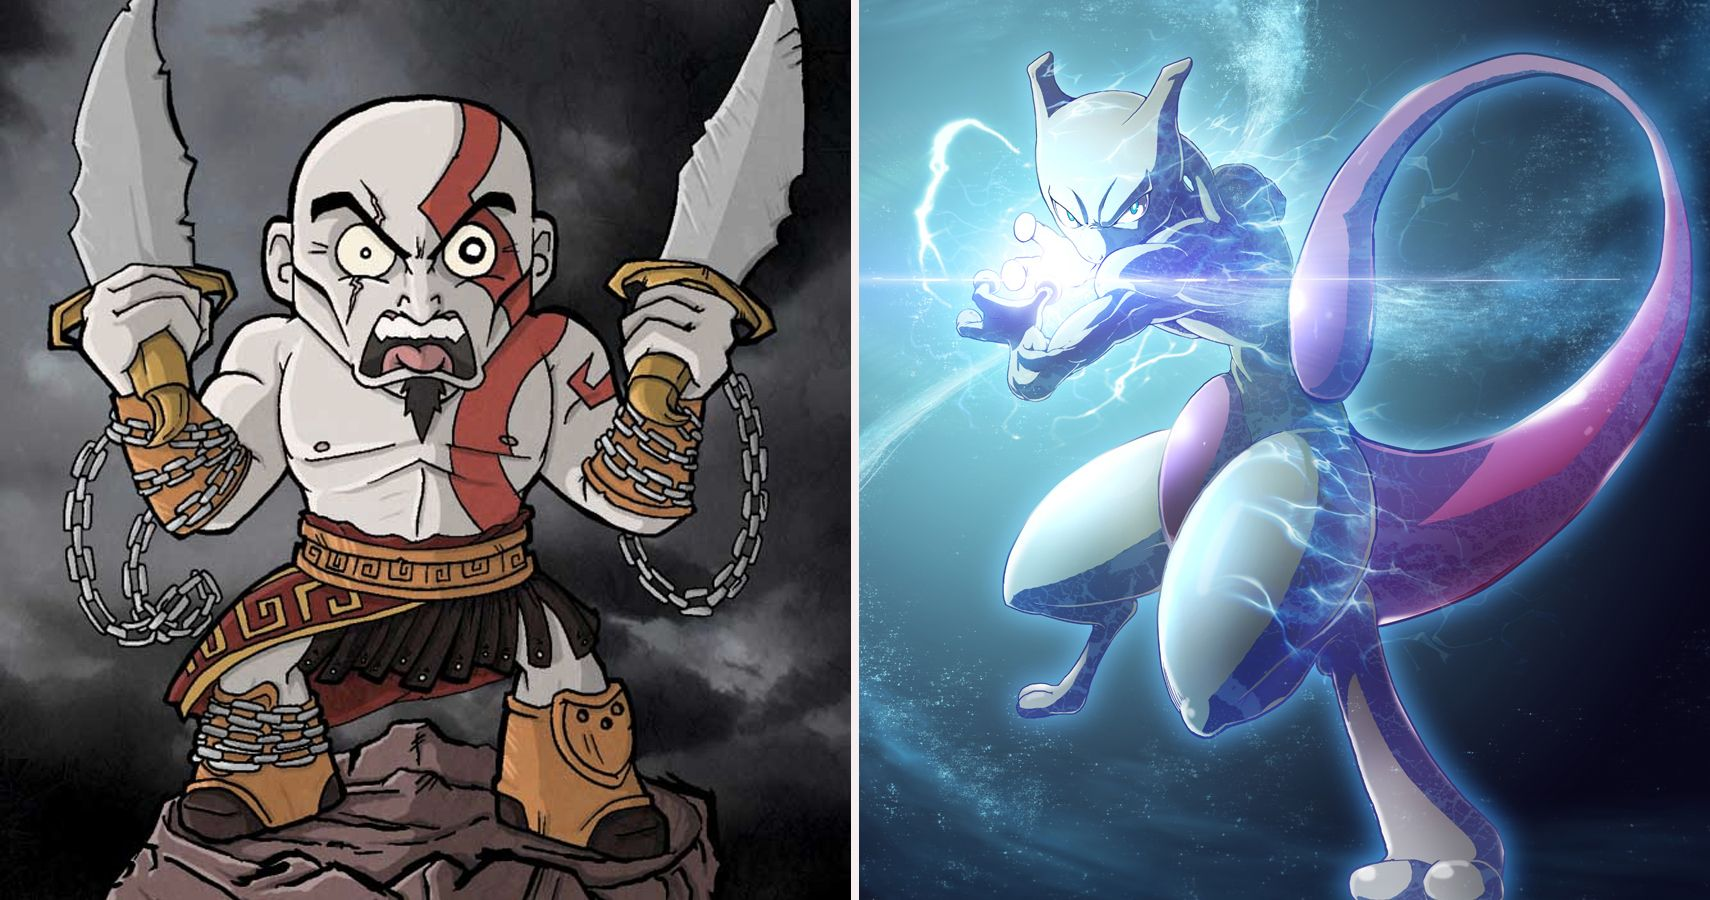 Weakling 15 Characters Who Could Pulverize Kratos Thegamer